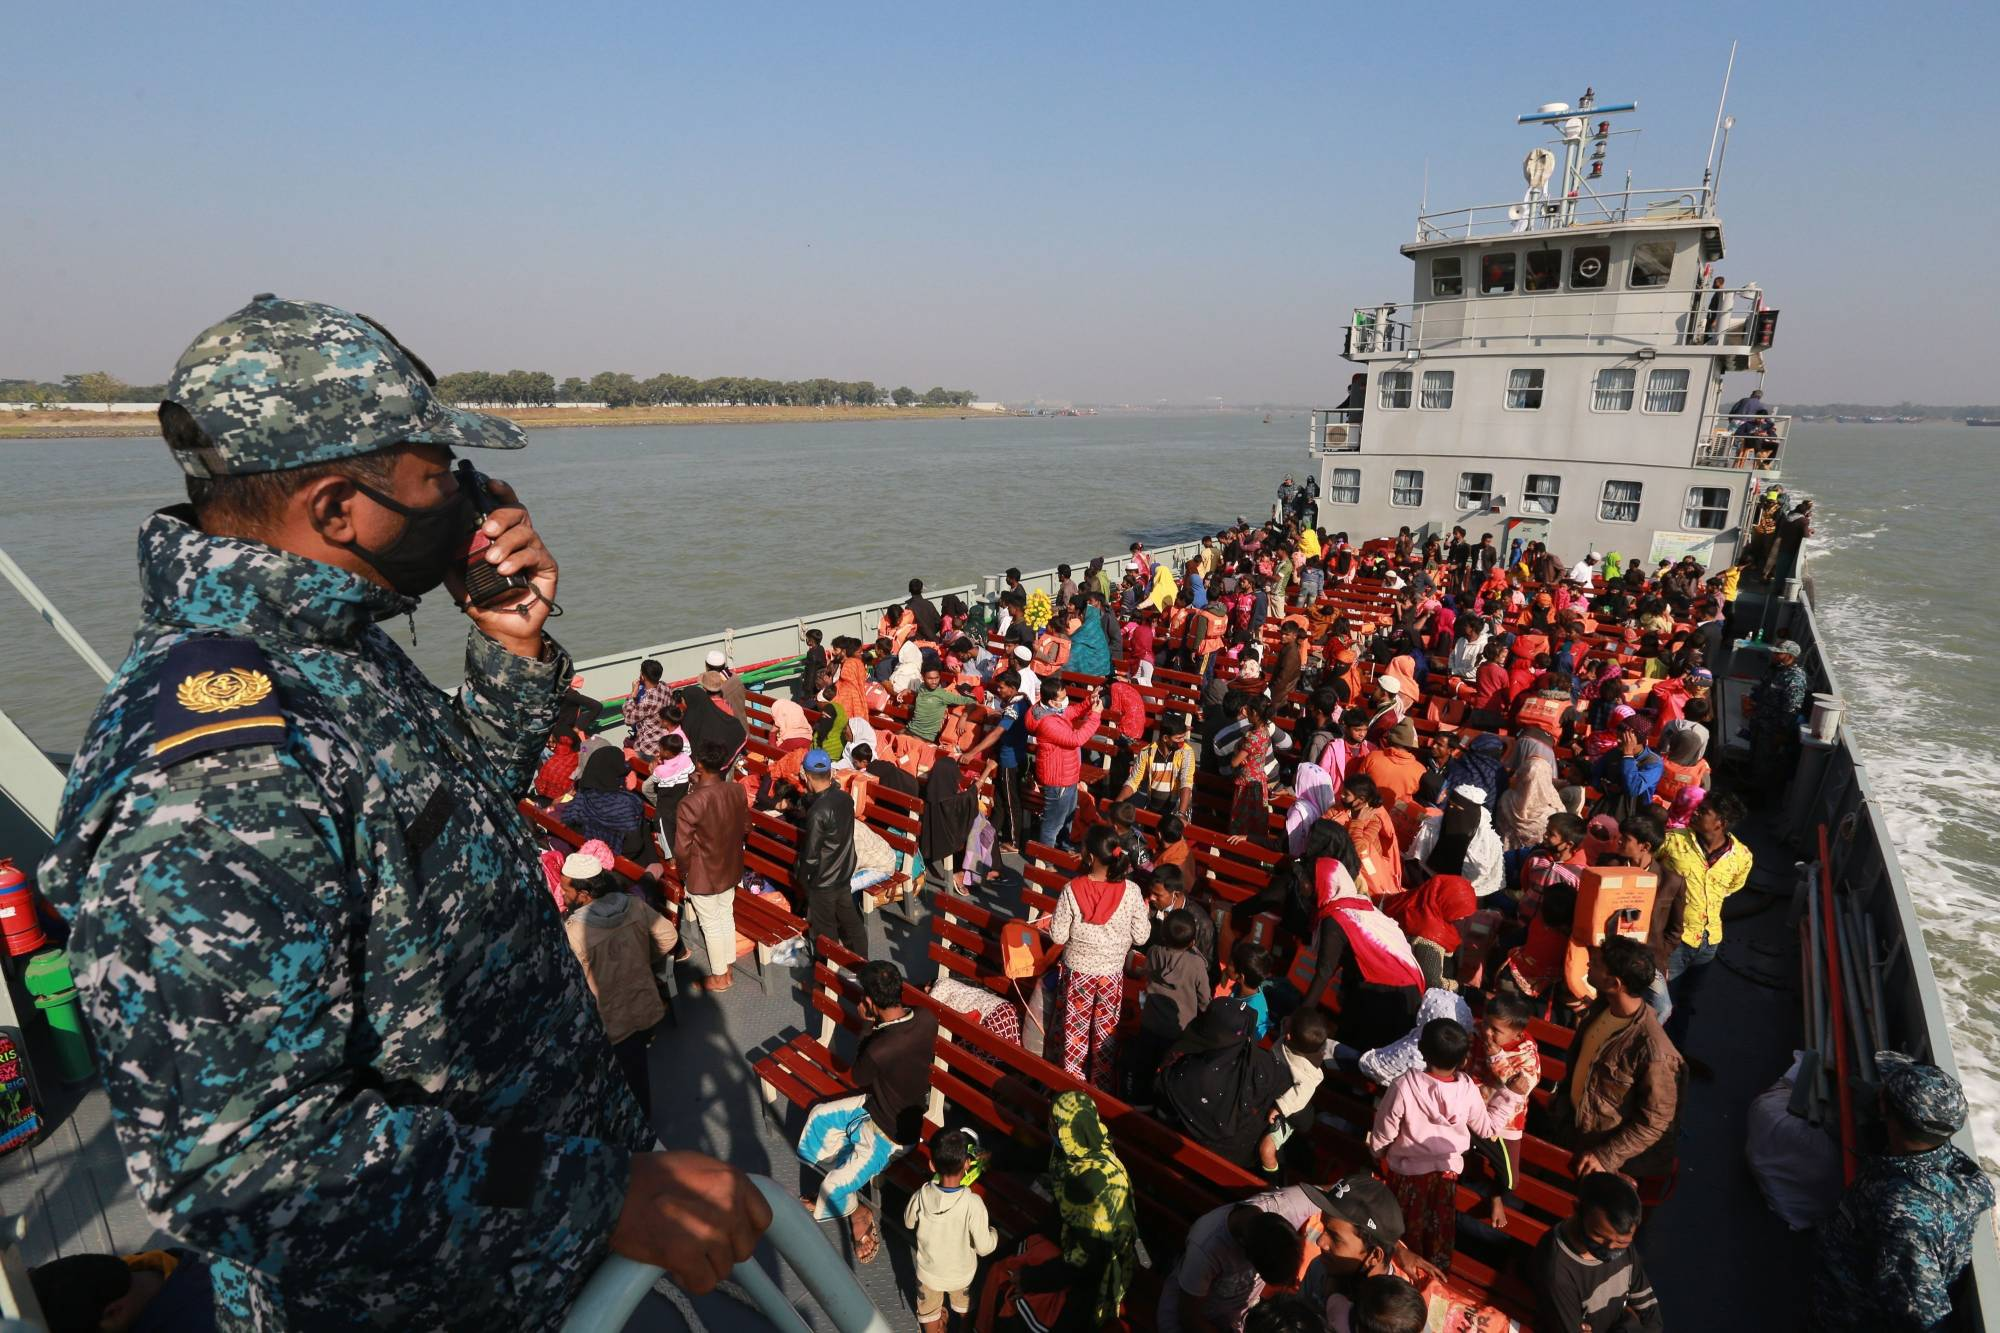 Rohingya refugees are relocated to the controversial flood-prone island Bhashan Char in the Bay of Bengal on Dec. 29. | GETTY IMAGES / VIA BLOOMBERG